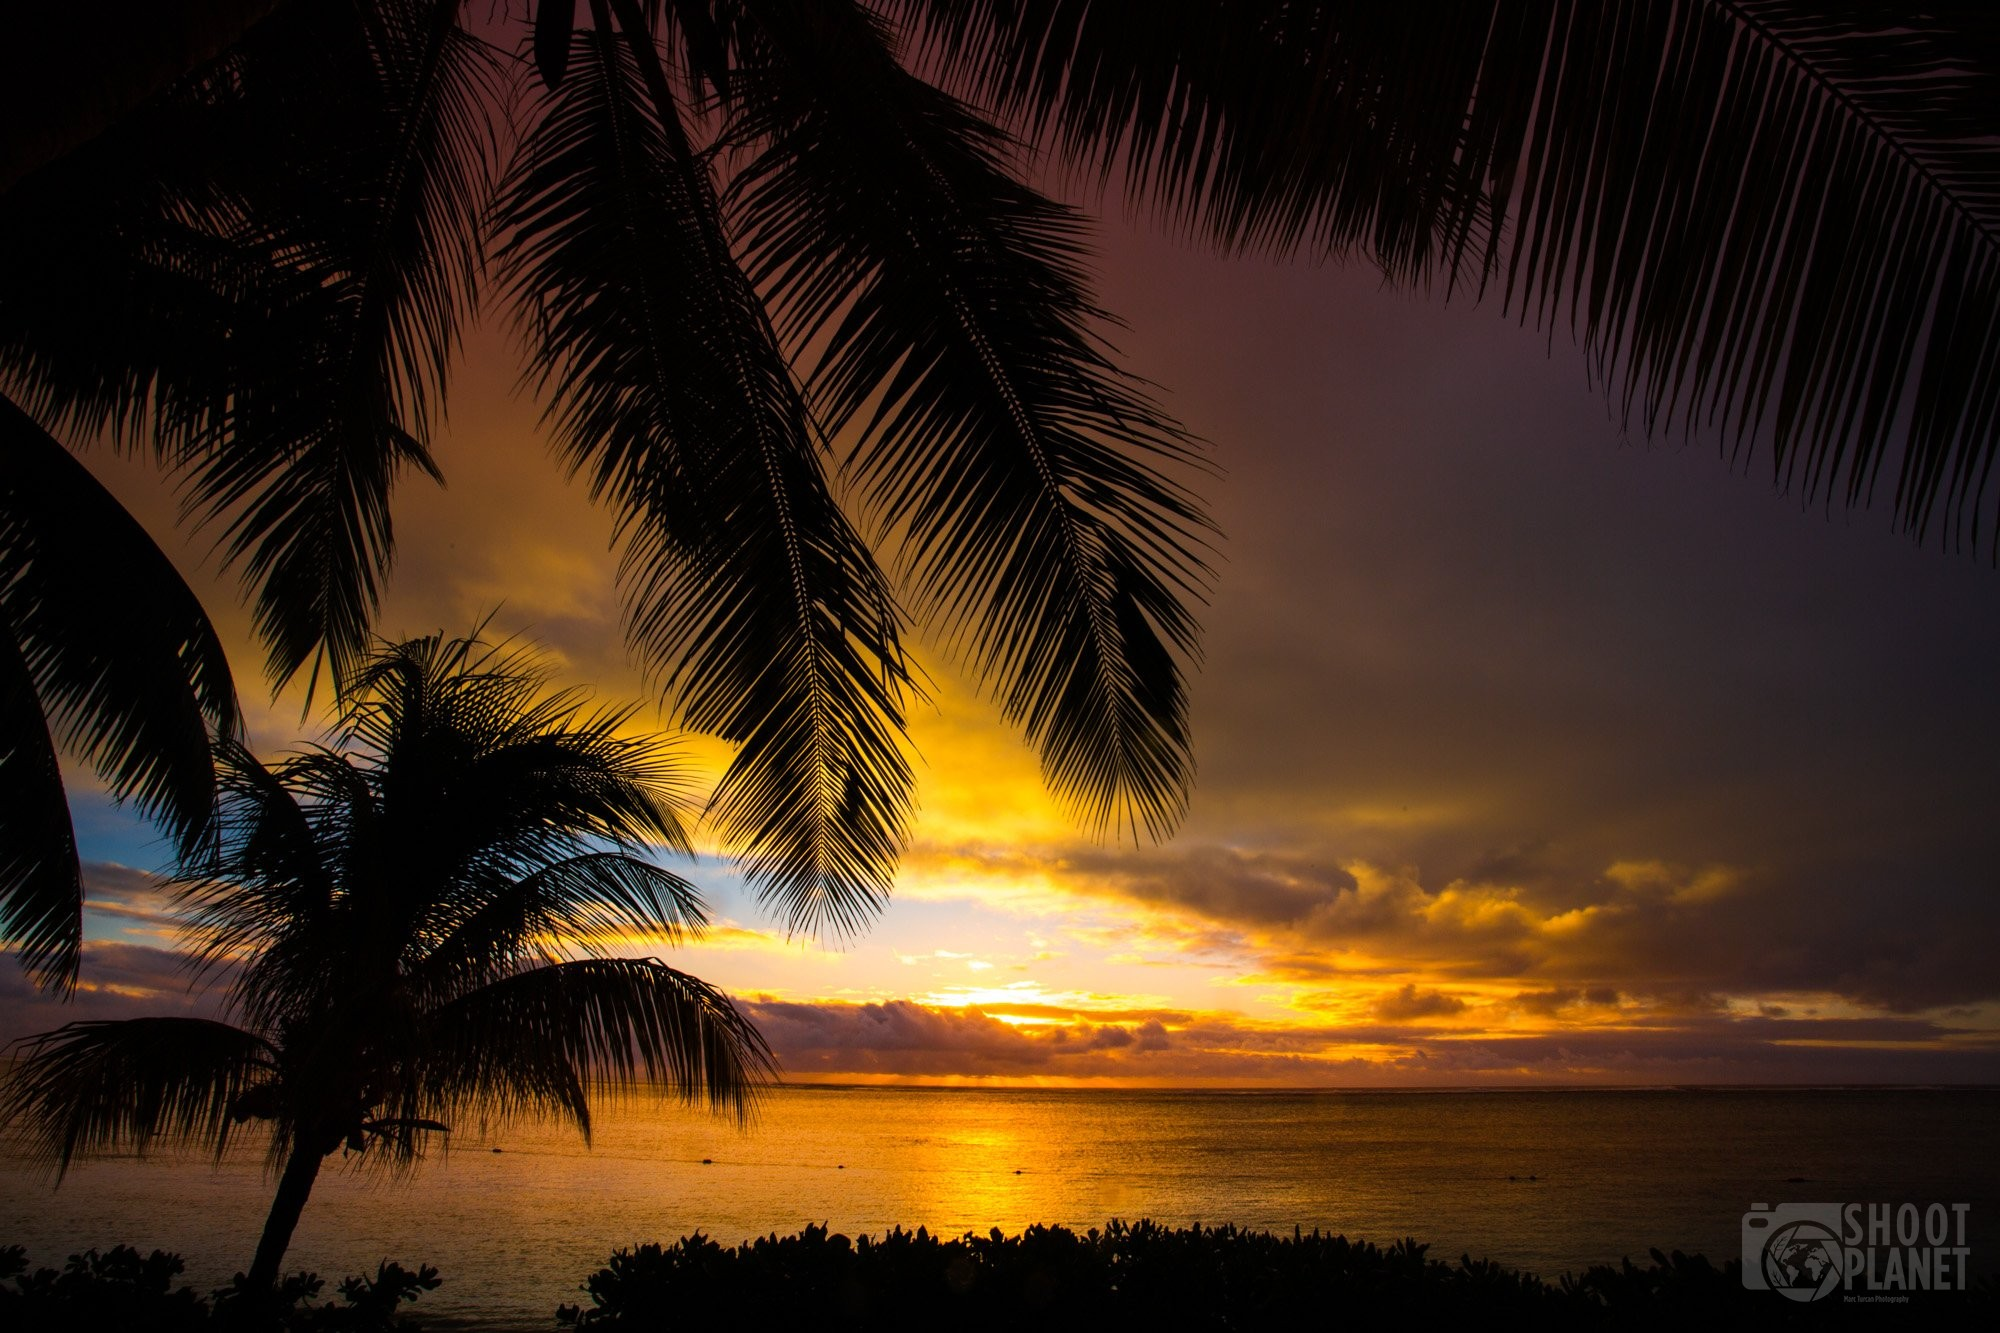 palm tree sunset over the ocean, Mauritius